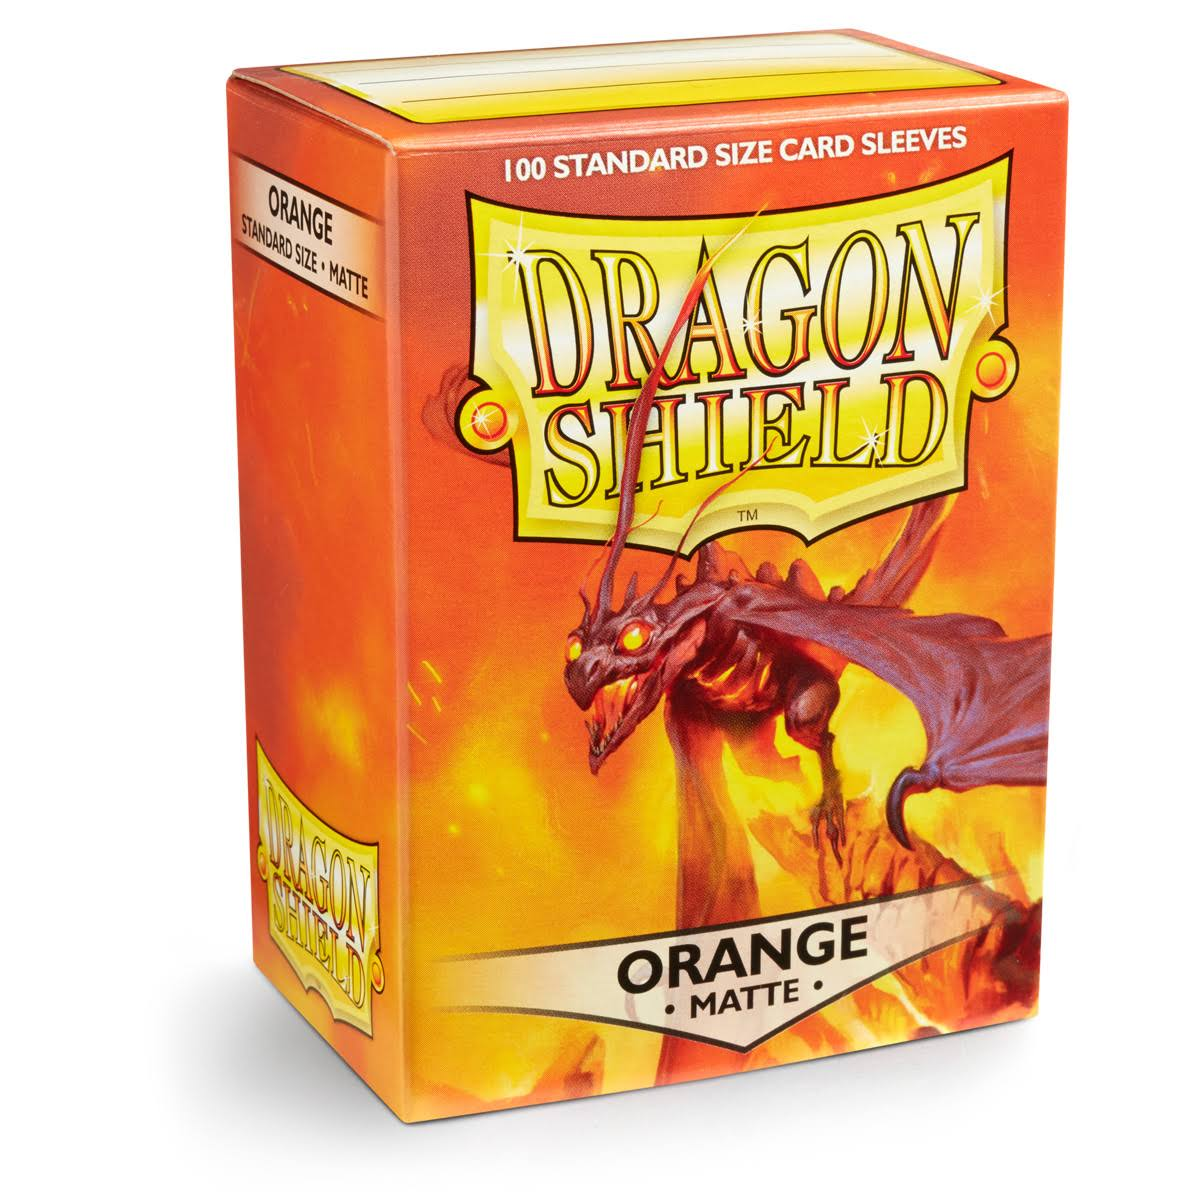 Dragon Shield Sleeves: Matte Orange, Box Of 100